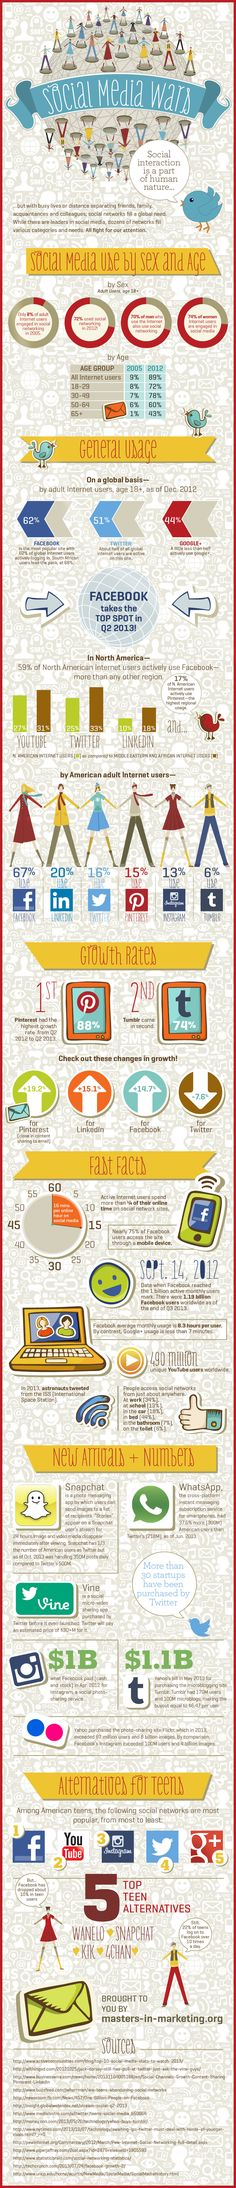 The Social Media Wars [INFOGRAPHIC] Social media has become an essential part of our daily lives, but, with so many networks out there fighting for our attention which networks are we really using? Overall, 72% of adults over the age of 18 used a social network in 2012. Currently Facebook is still the most popular site with 62% of adult global Internet users actively logging in, with nearly half of these users active on Twitter too.